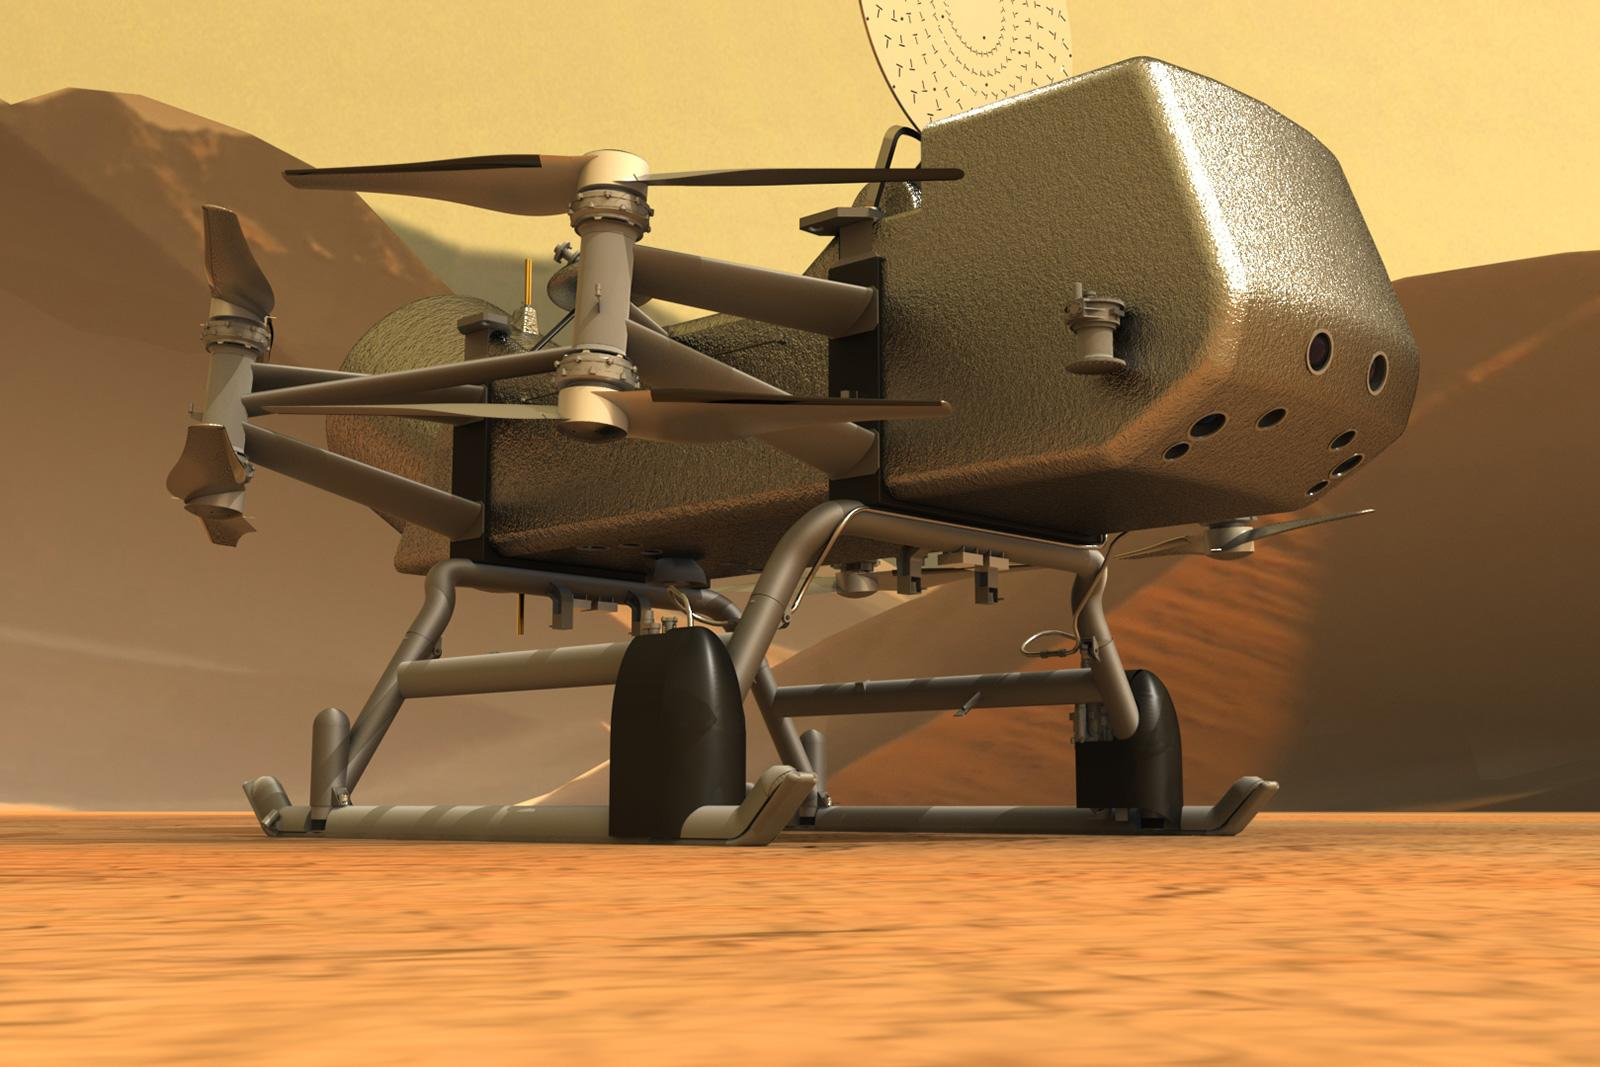 NASA delays its Titan drone mission by another year – Yahoo News Australia